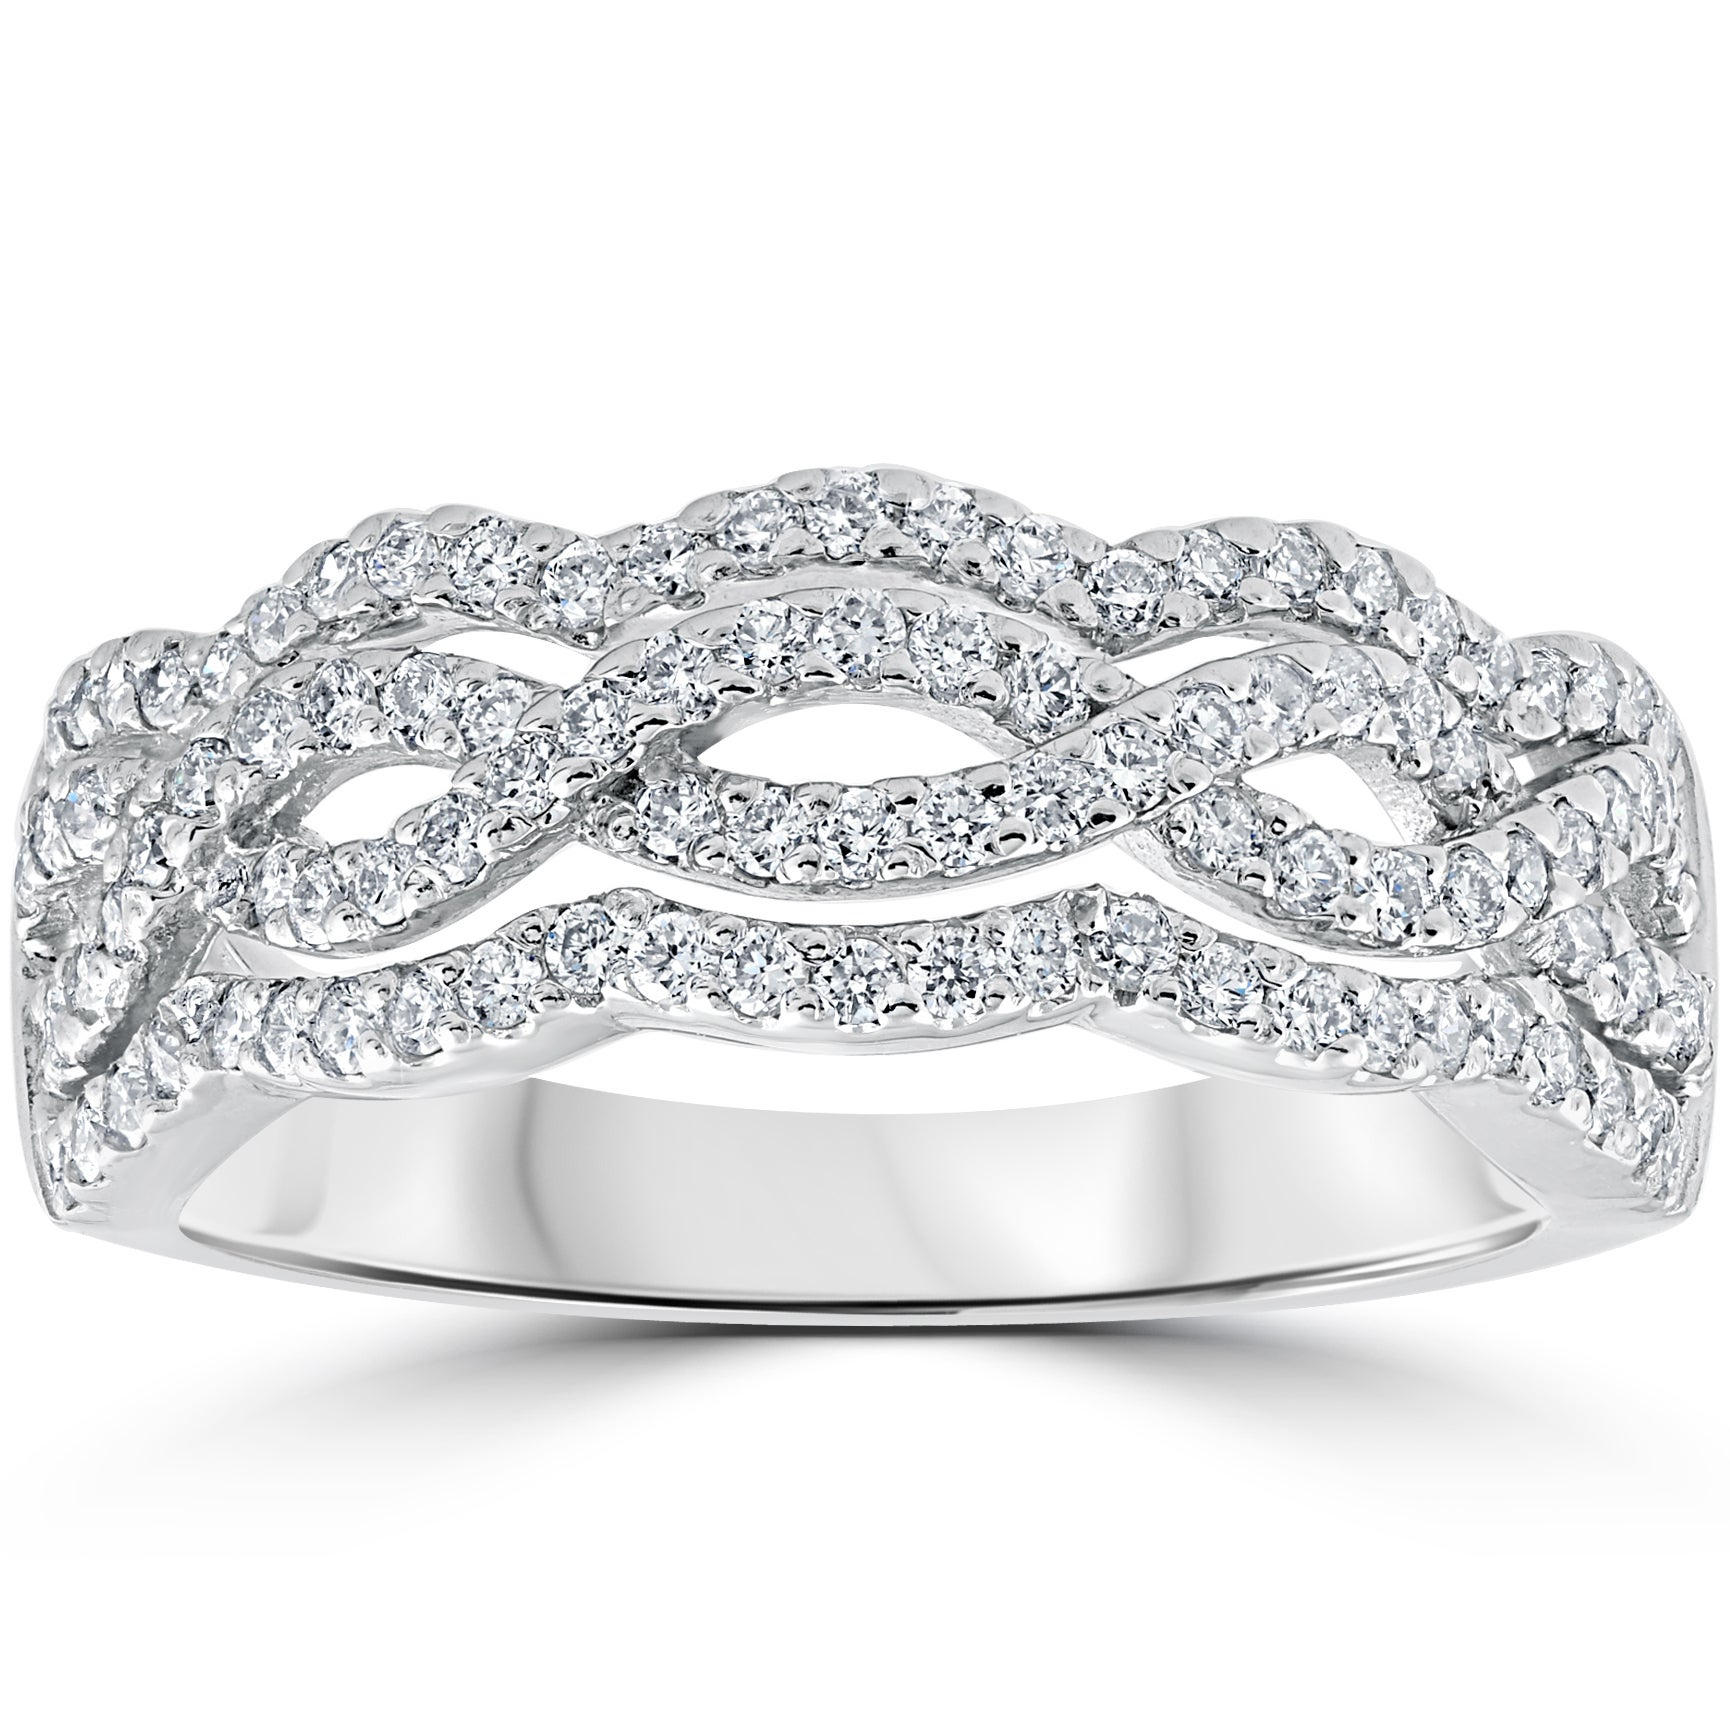 Featured Photo of Diamond Multi Row Anniversary Ring In White Gold